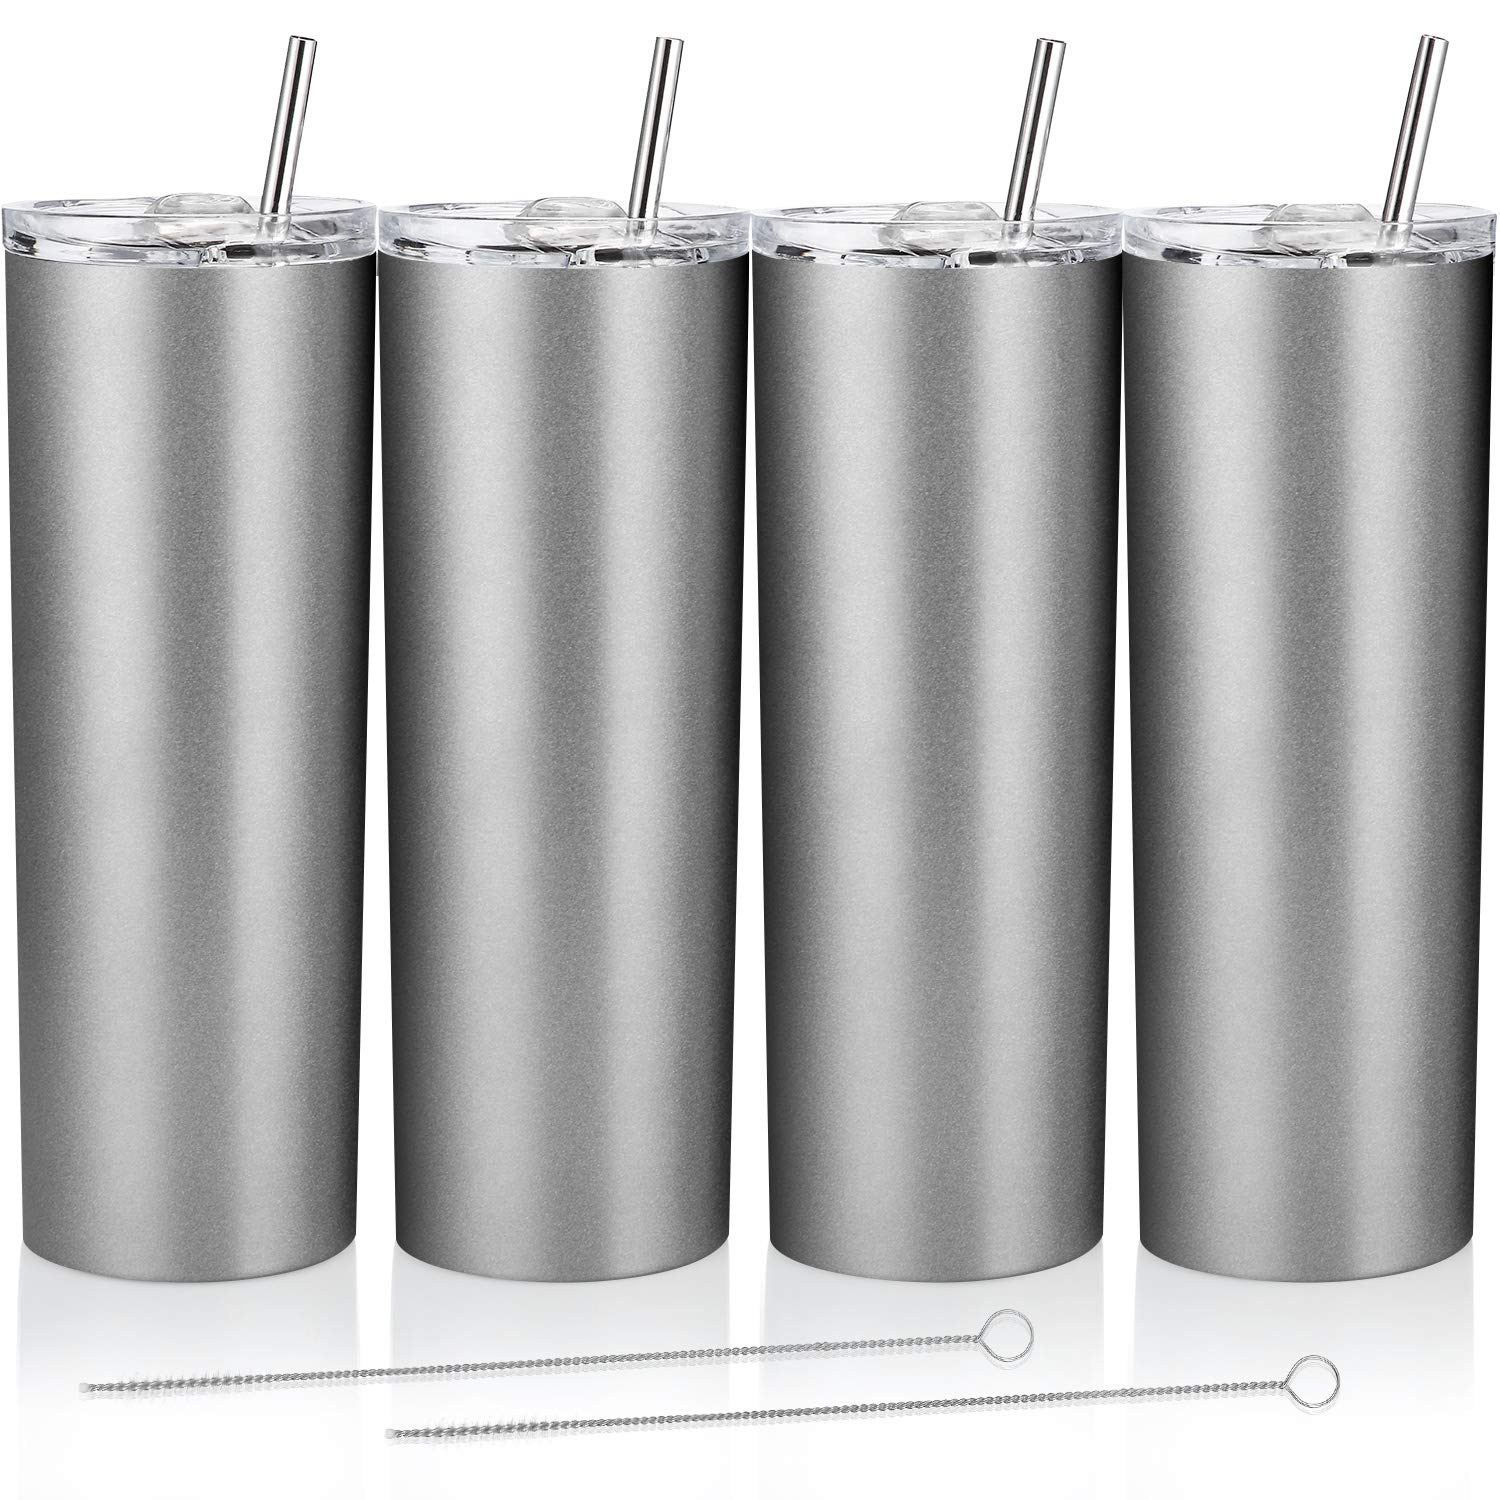 4 Pack Classic Tumbler Stainless Steel Double-Insulated Water Tumbler Cup with Lid and Straw Vacuum Travel Mug Gift with Cleaning Brush (Matte Silver, 20 oz)